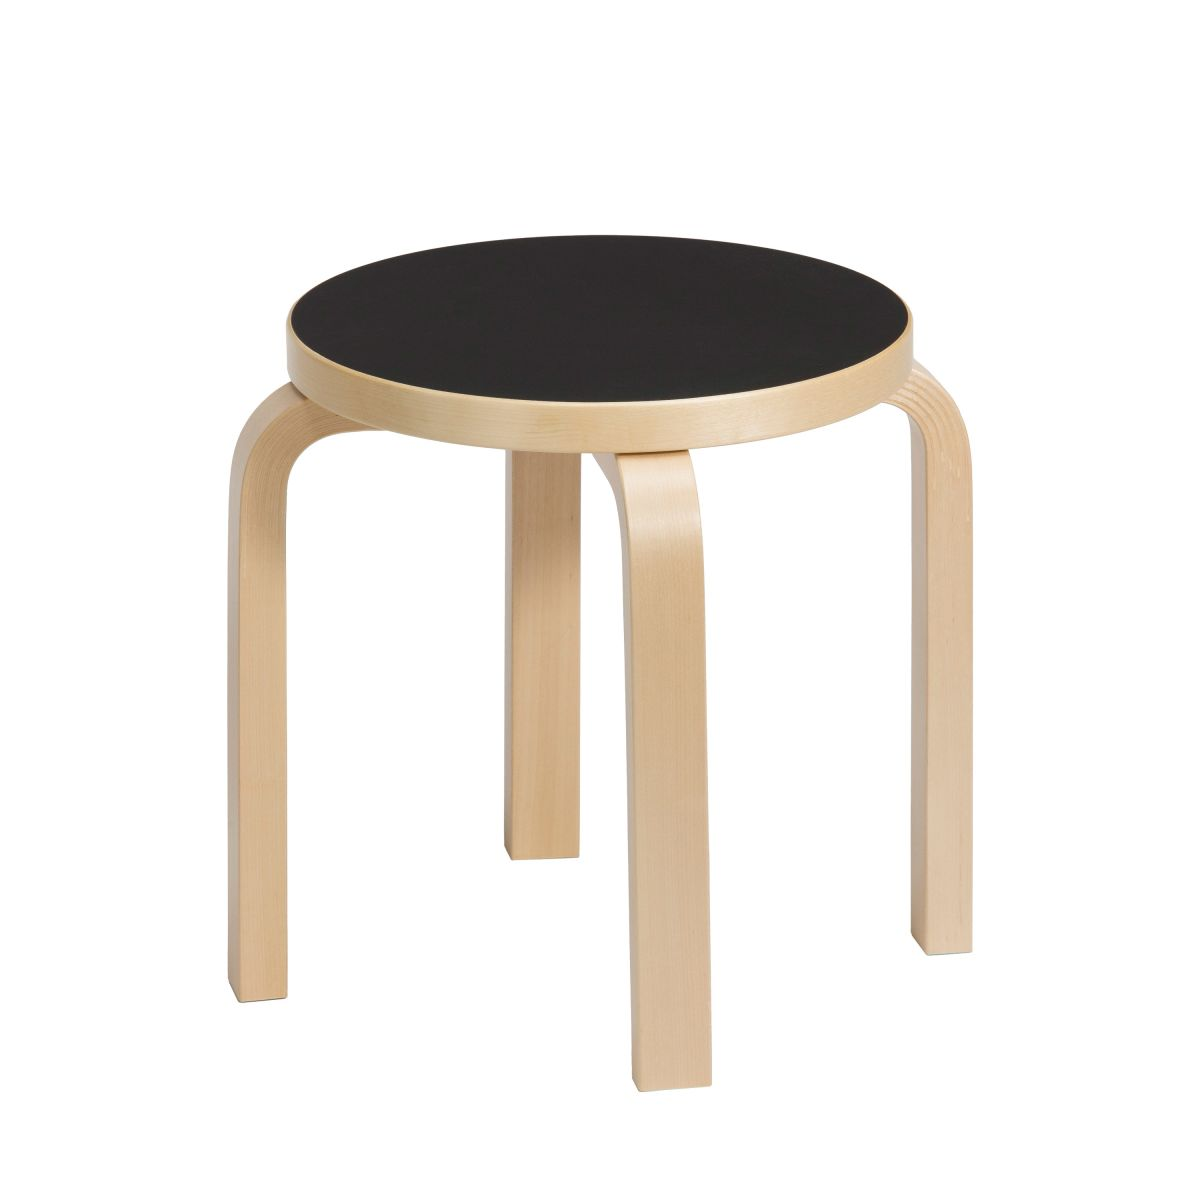 Childrens-Stool-Ne60-Black-Linoleum_Web-1977501